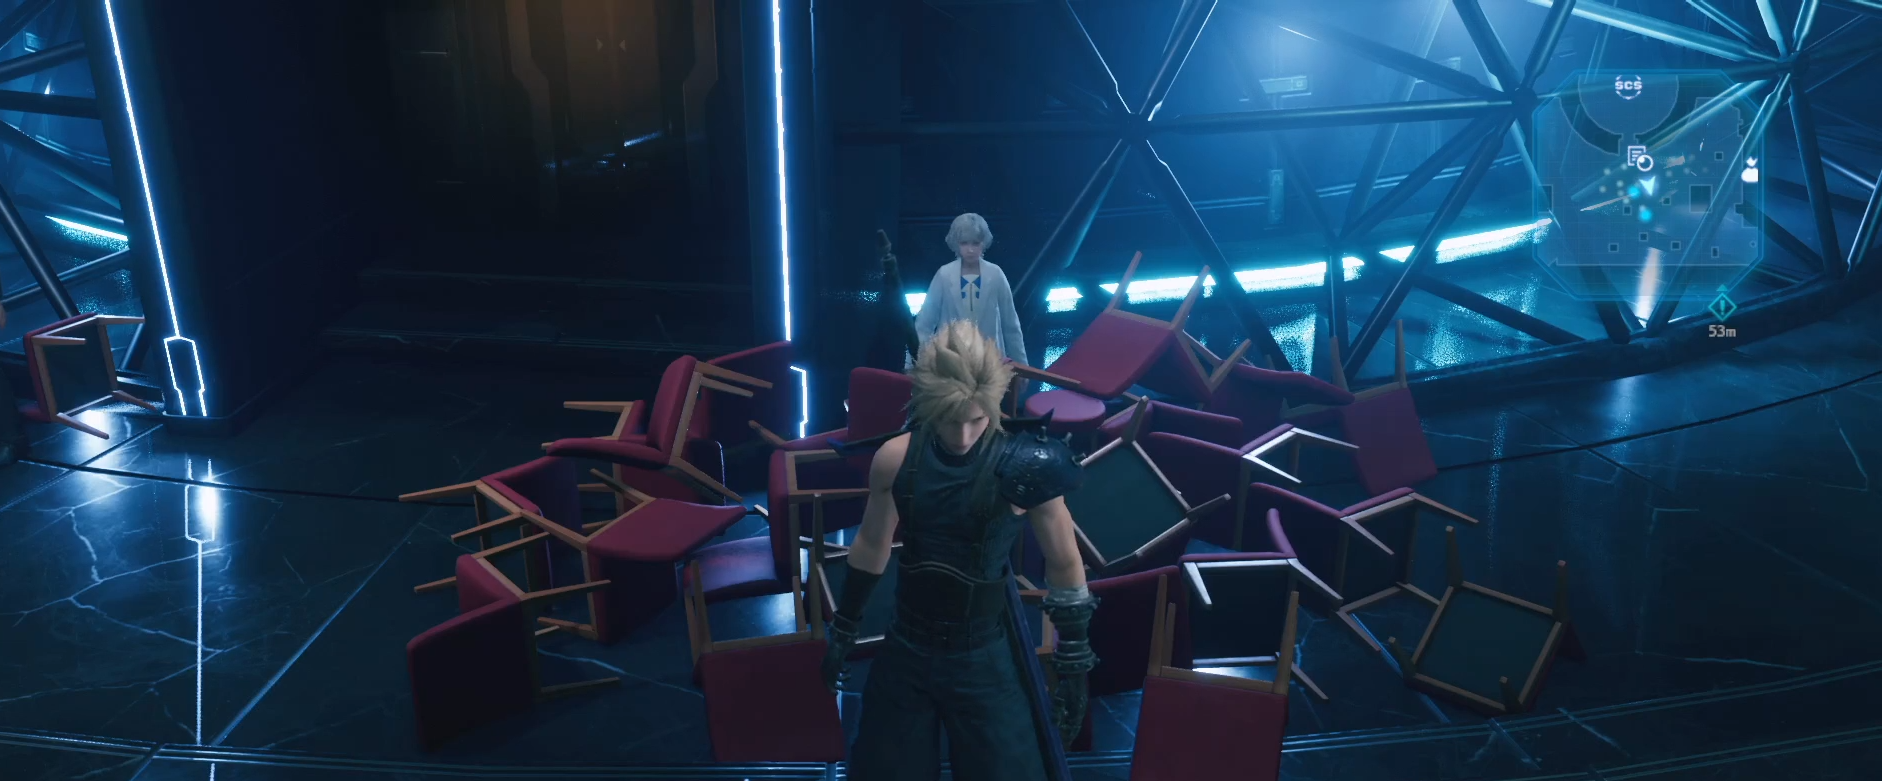 Chairdley - Final Fantasy VII Chadley but covered in chairs